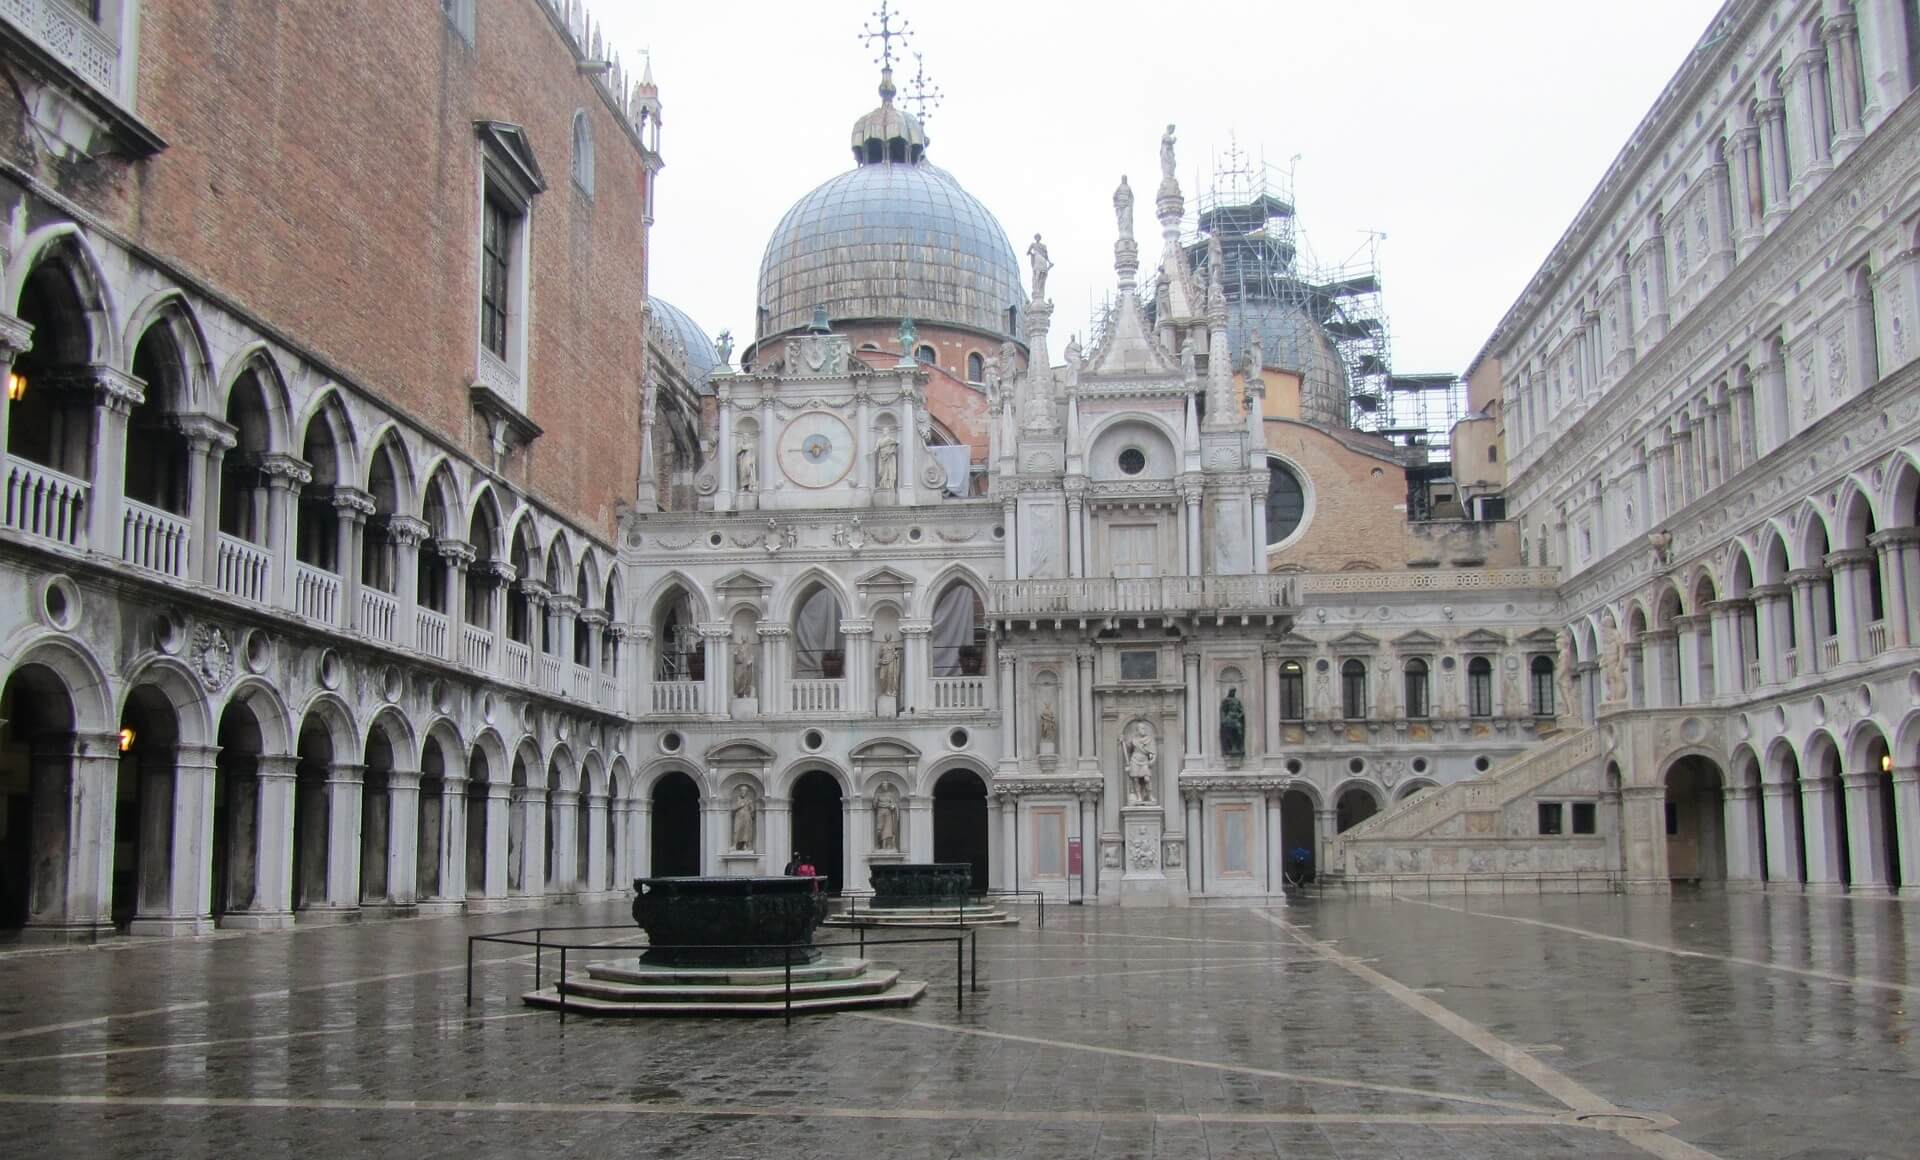 St. Mark's Church in Venice - How to spend the perfect weekend in Venice